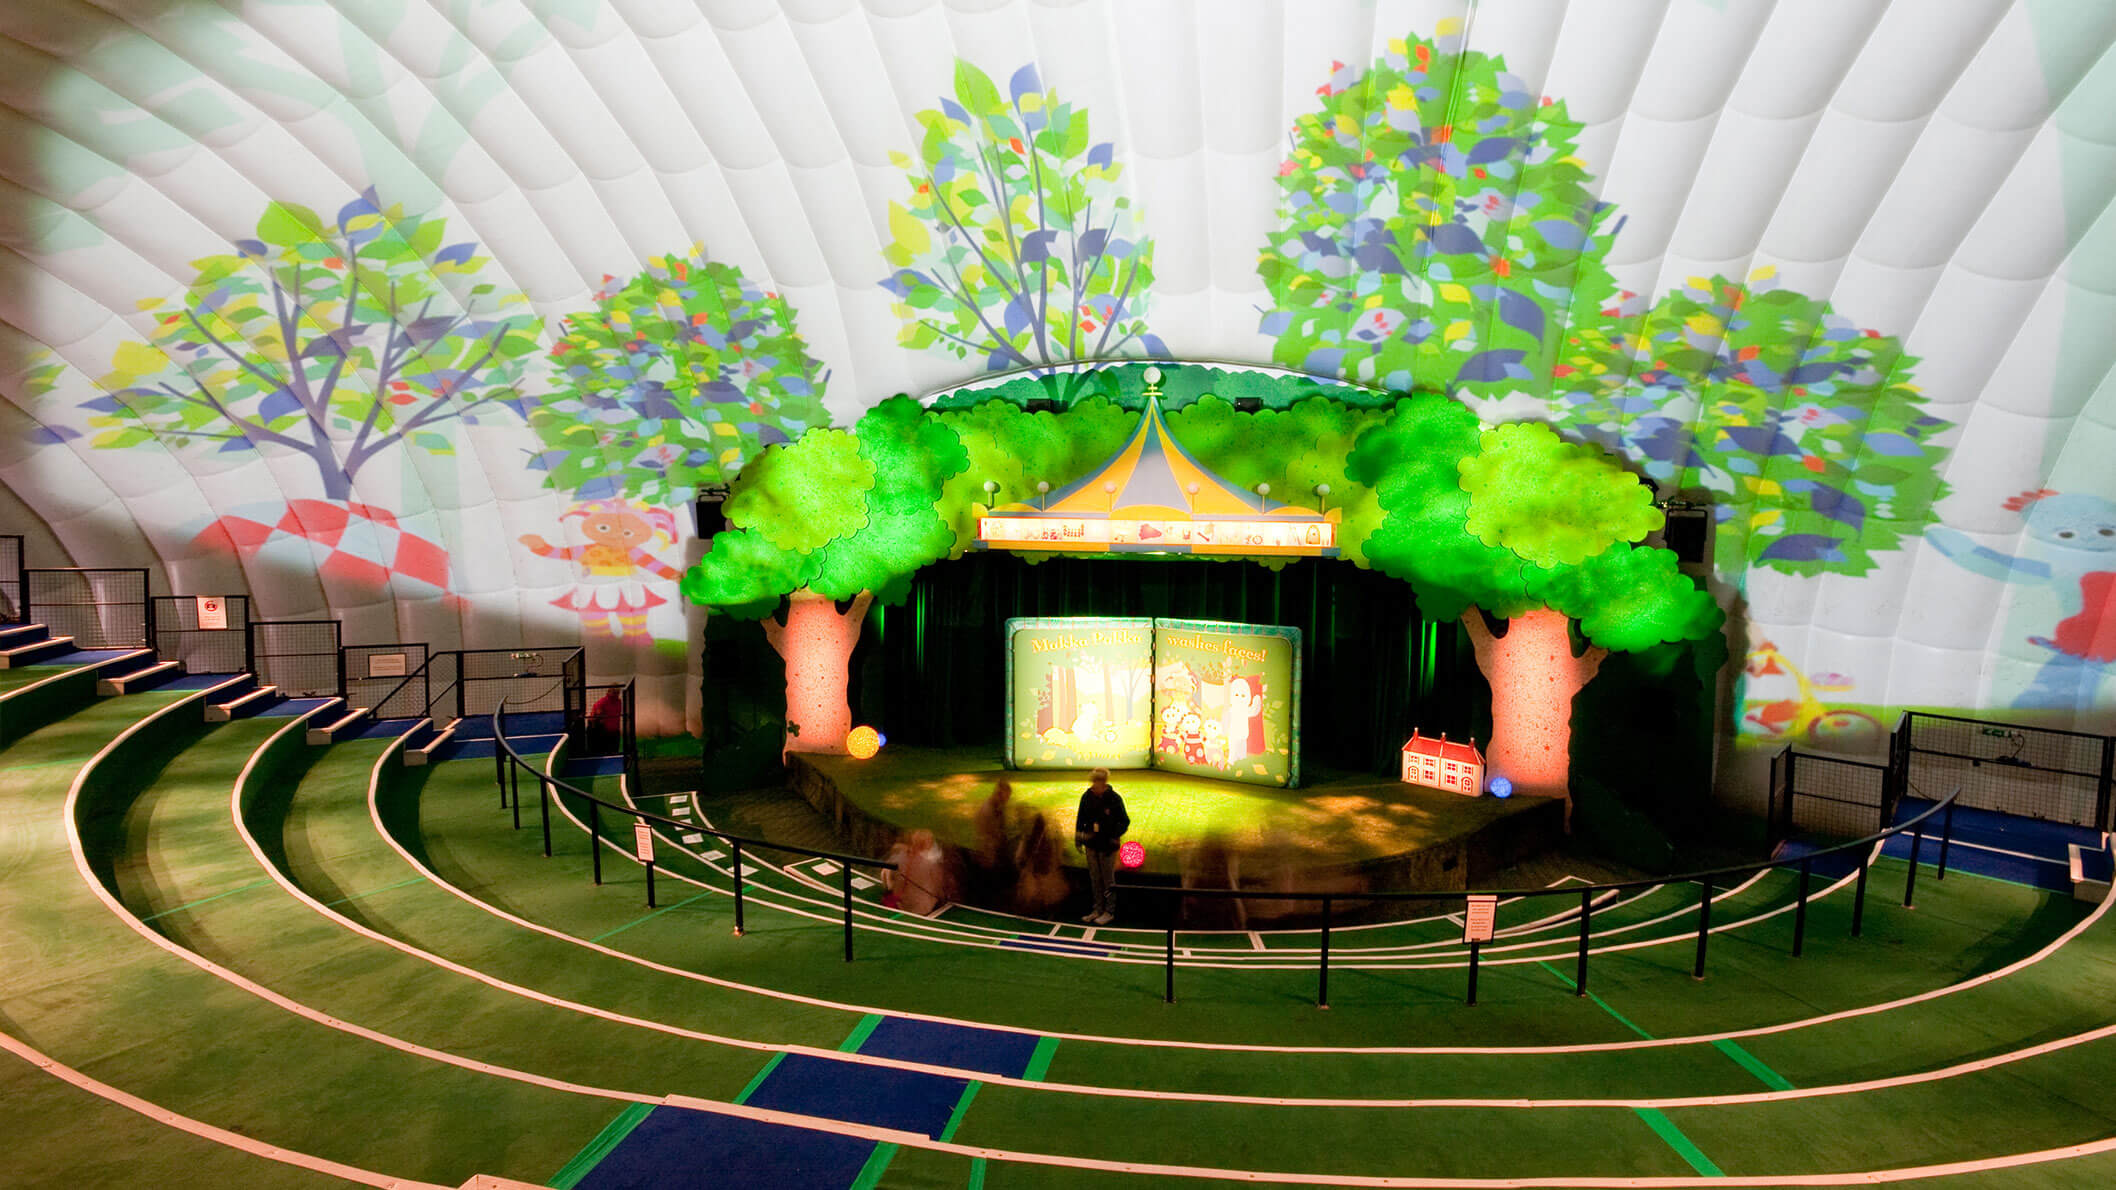 A stage inside a white tent with two trees on each side. There is a projection of colourful trees and two characters on the tent walls.